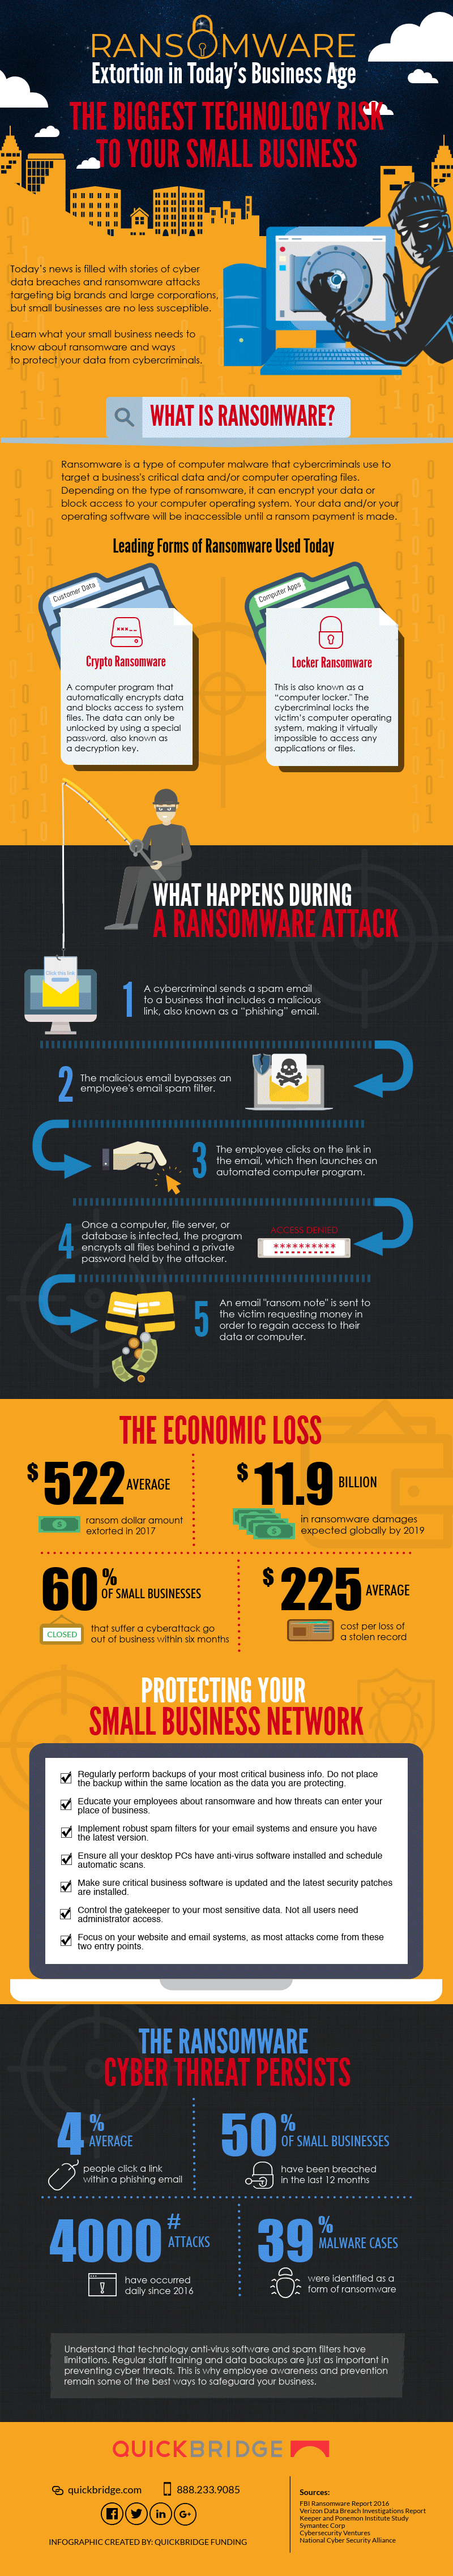 infographic on small business ransomware attacks